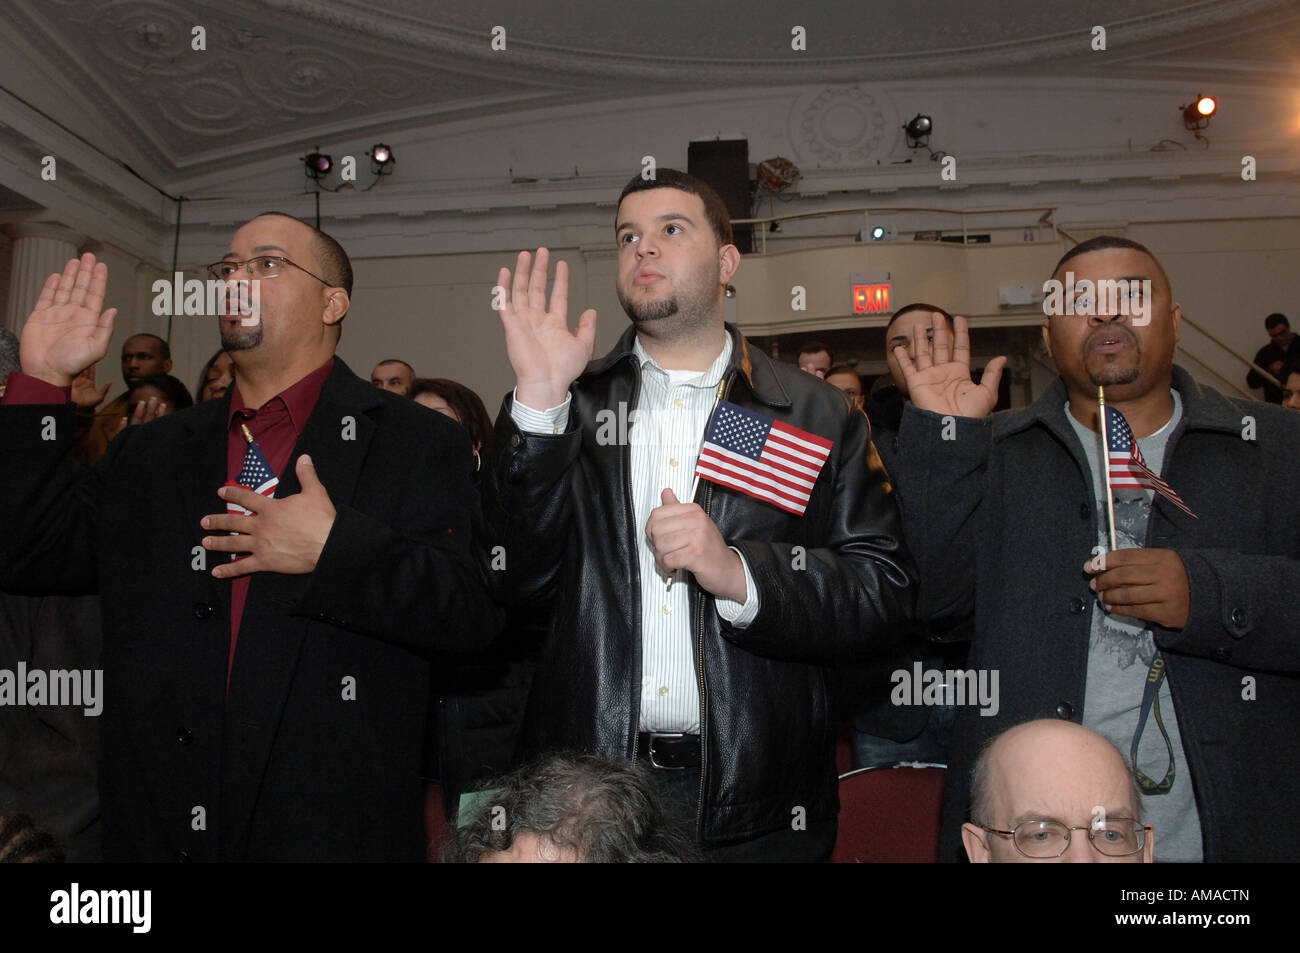 101 new Americans are sworn in as citizens at a naturalization ceremony at the New York Historical Society - Stock Image